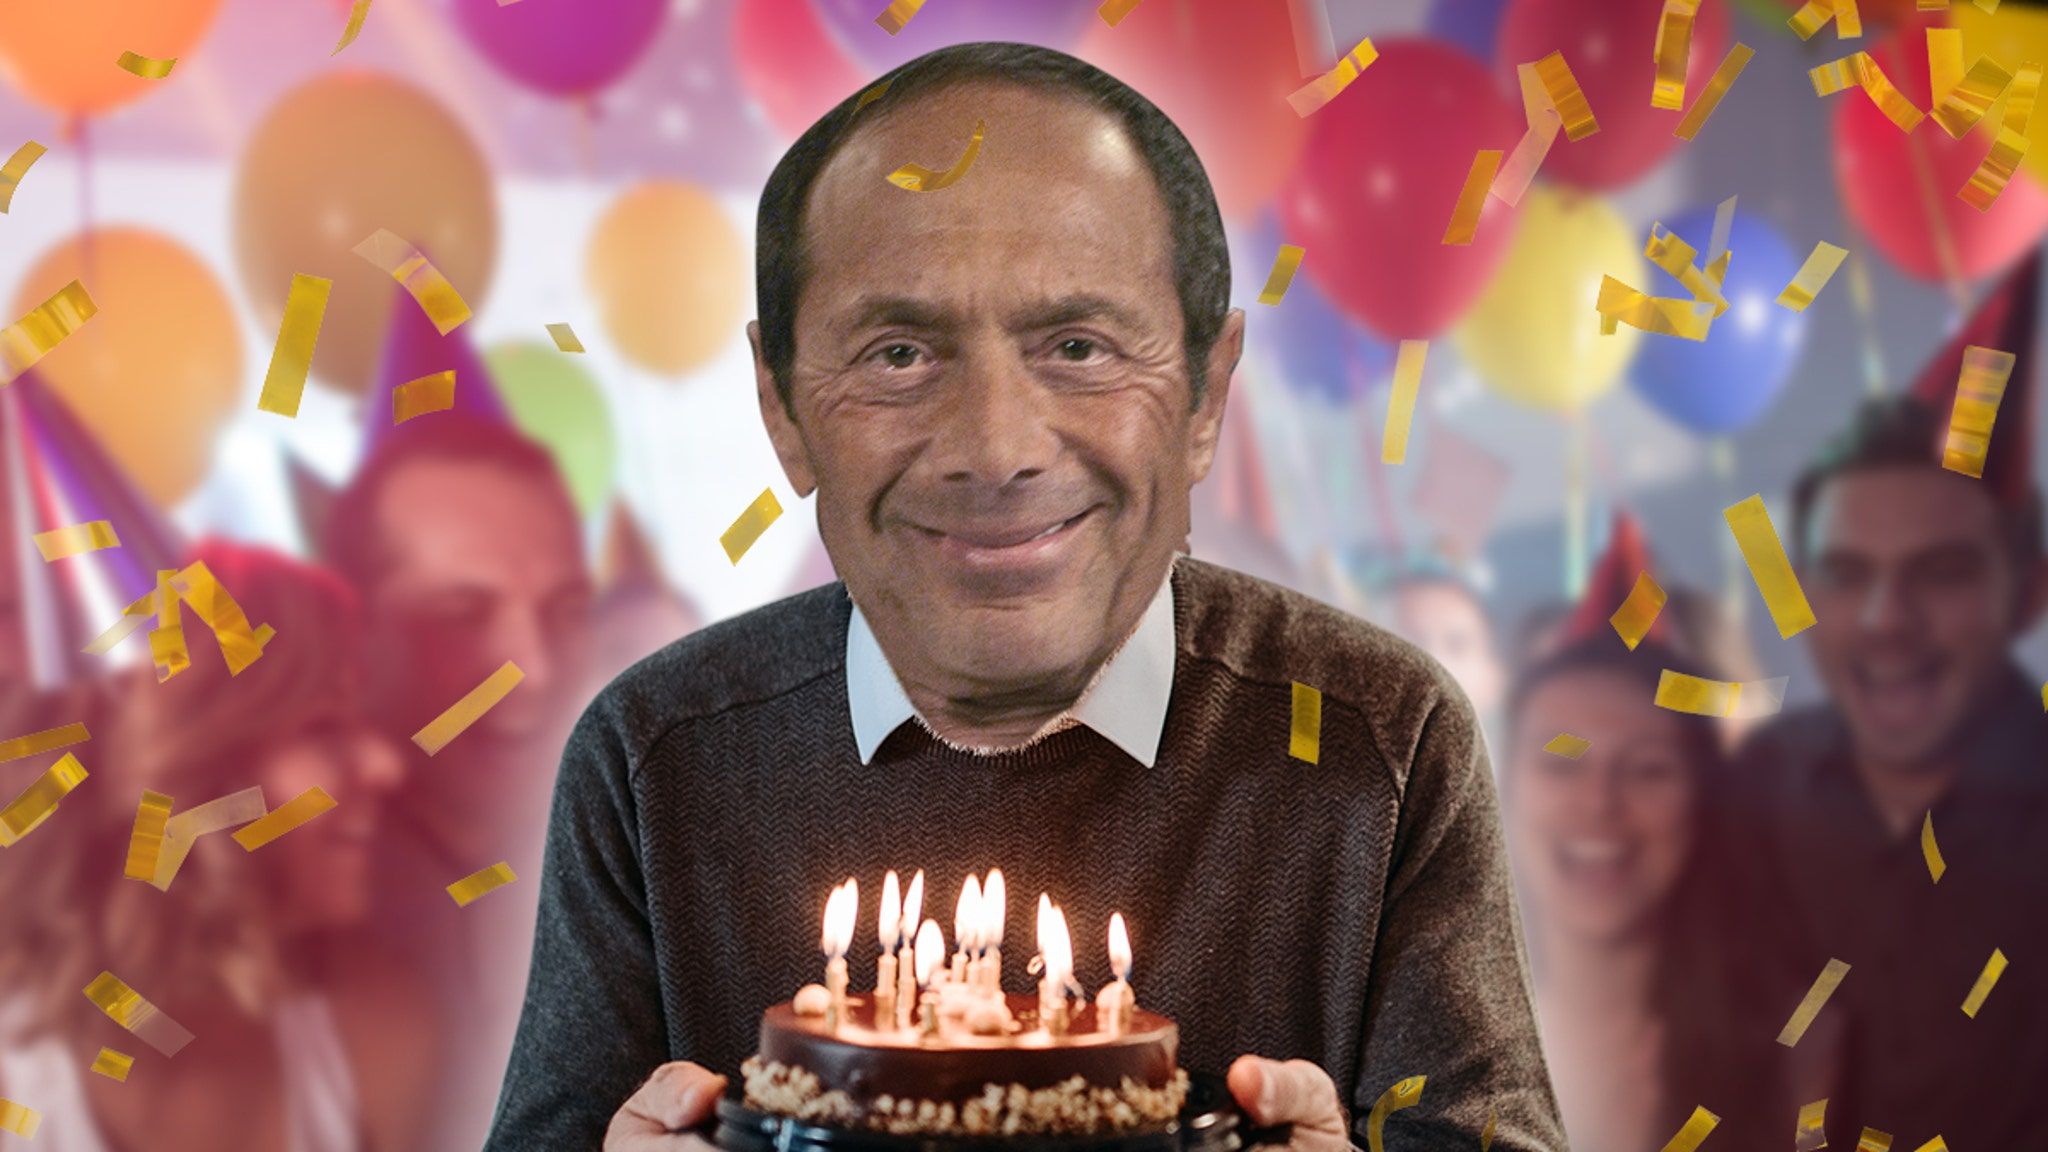 Paul Anka's 80th Birthday Tributes Pour in From All of Hollywood